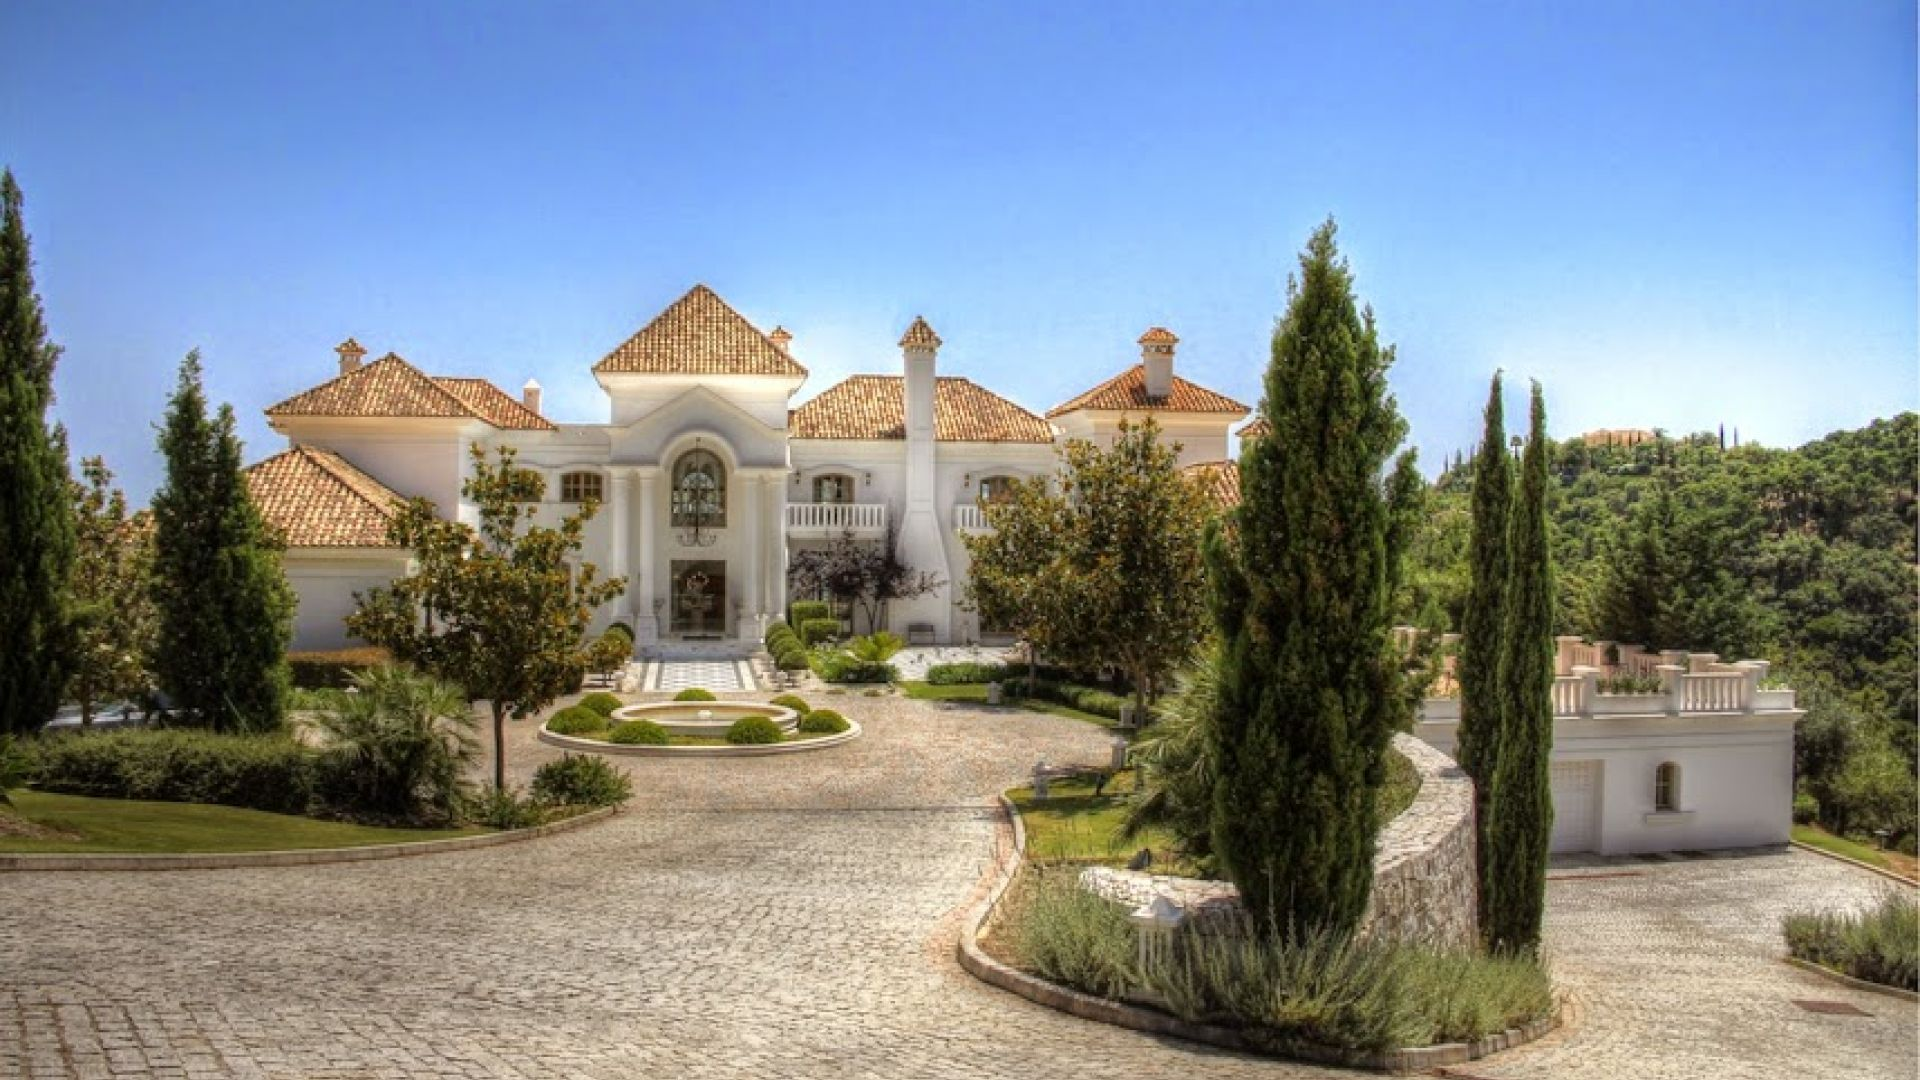 Property For Sale at Impressive, spacious, elegant, mansion in La Zagaleta